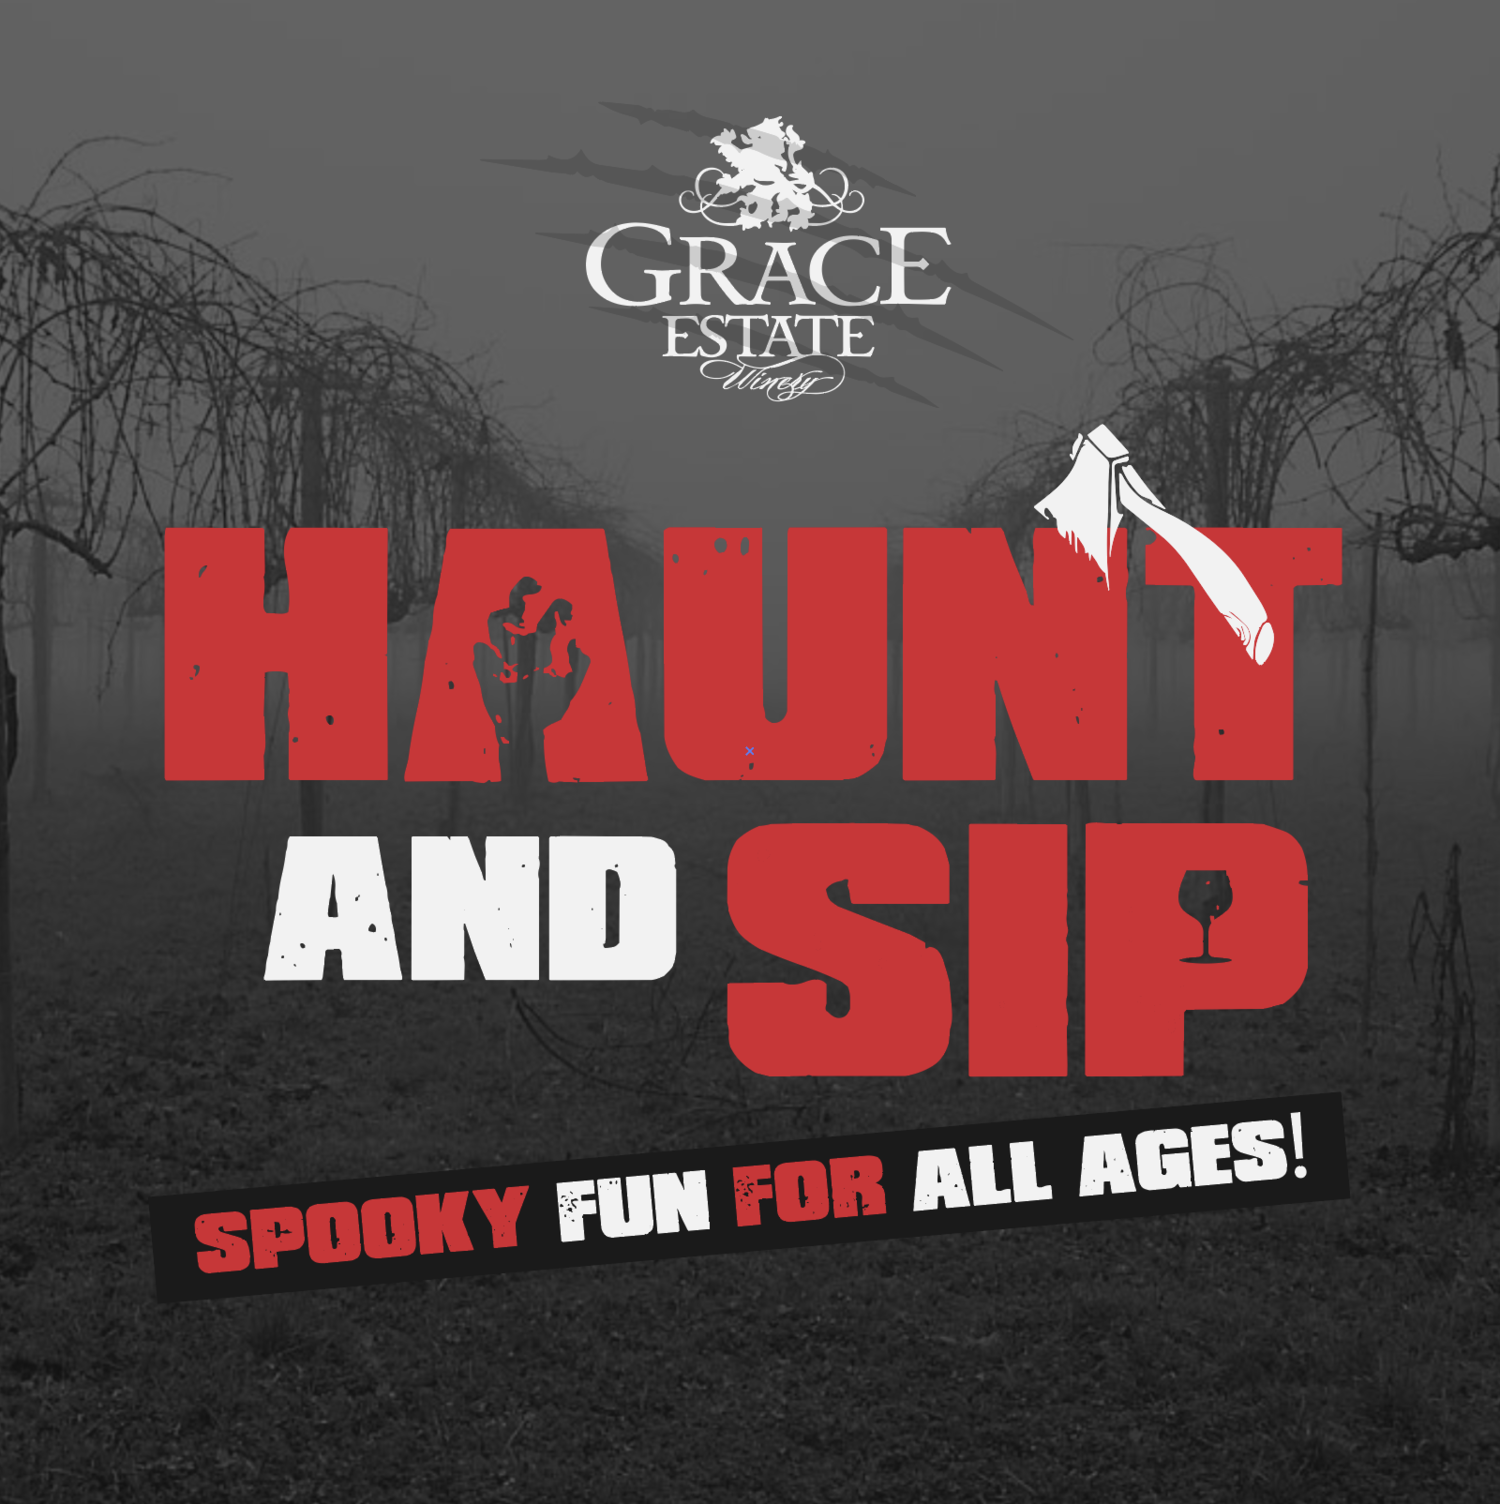 Haunt & Sip - Friday & Saturday Evenings in OctoberJoin us for a hayride and wine tasting through the haunted grounds of Mt. Juliet Farm at Grace Estate Winery. Learn about its brief history, experience the unknown, and meet the poor, tormented souls who cannot pass from this place.$25/Adult (Includes one glass of wine)$18/Adult (Non-alcoholic)$9/Kid (12 and Under)Hayrides available at 7PM, 8PM, and 9PM.